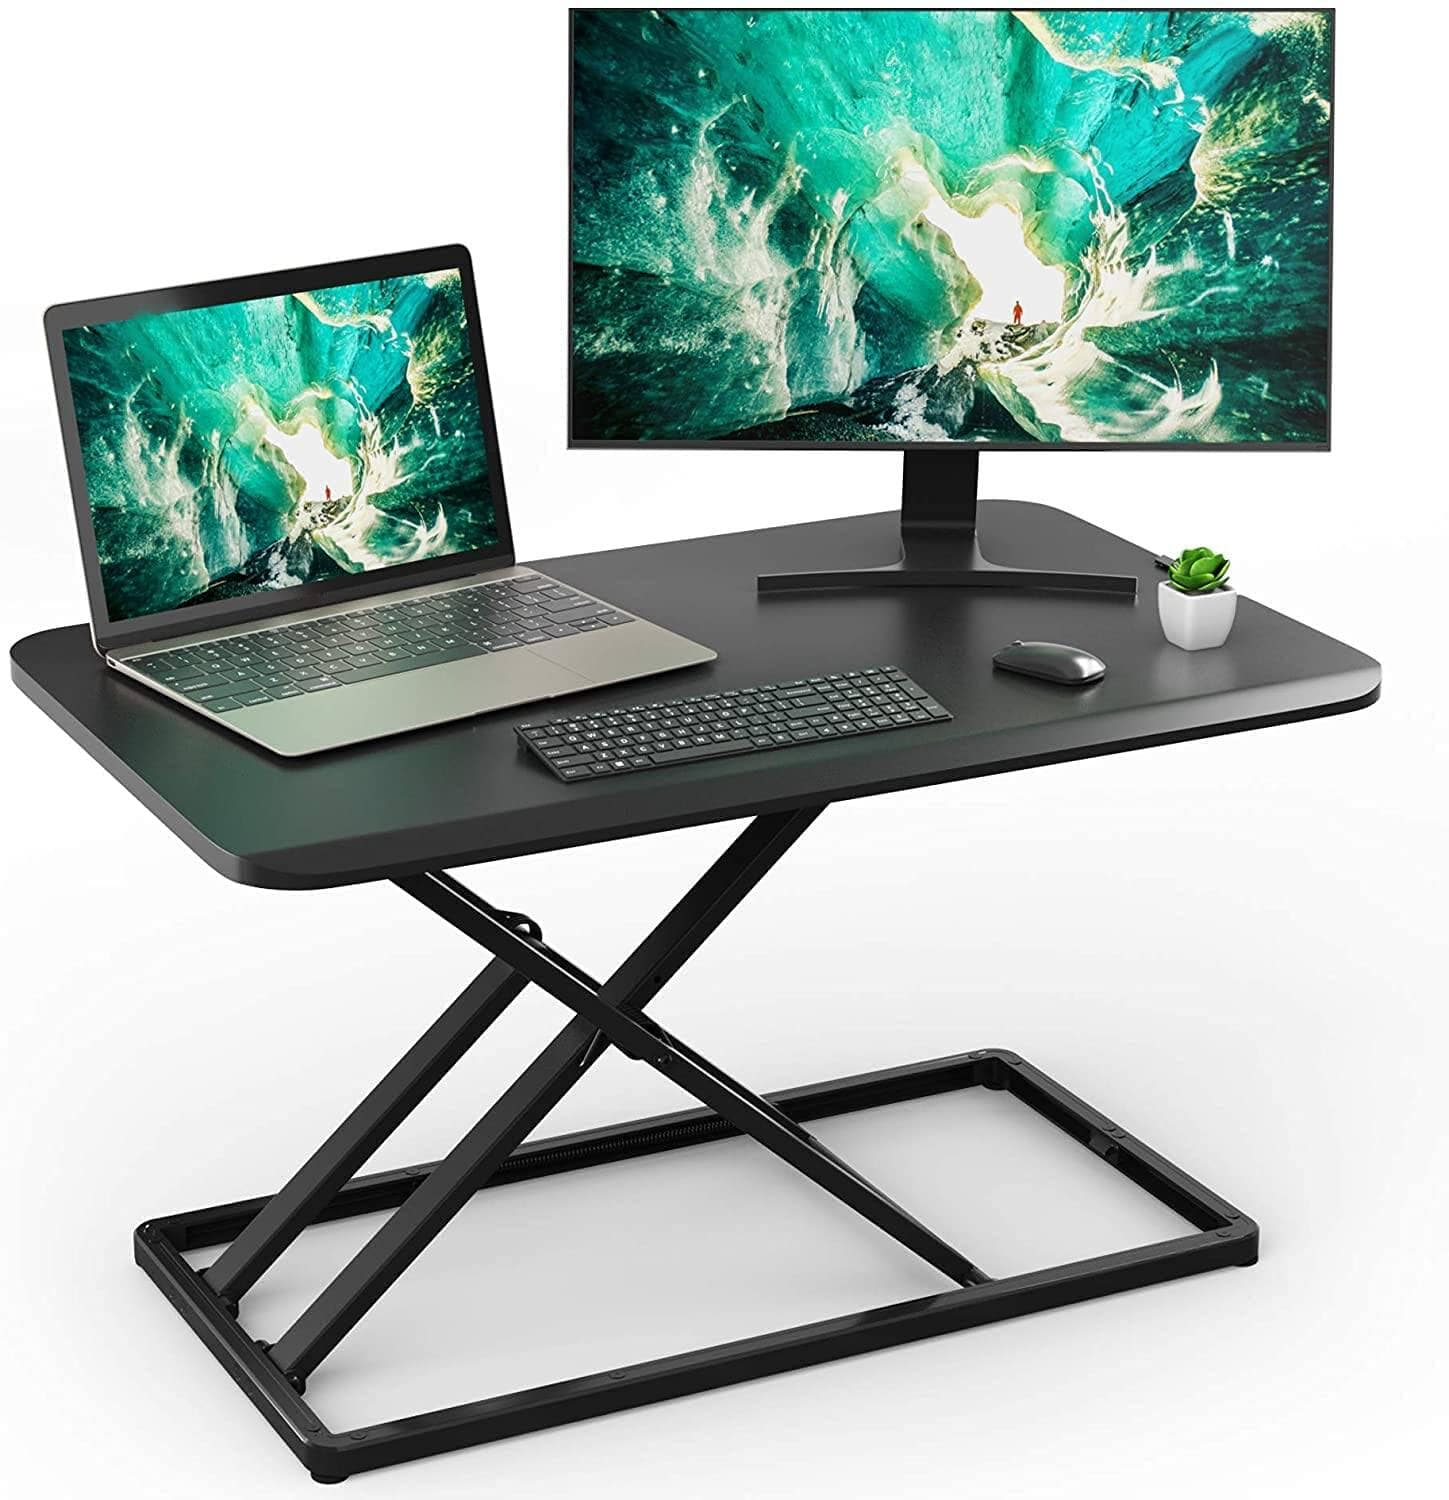 Height Adjustable Stand UP Desktop Riser for 28.5 inches $44.99 + Free Shipping w/ Prime